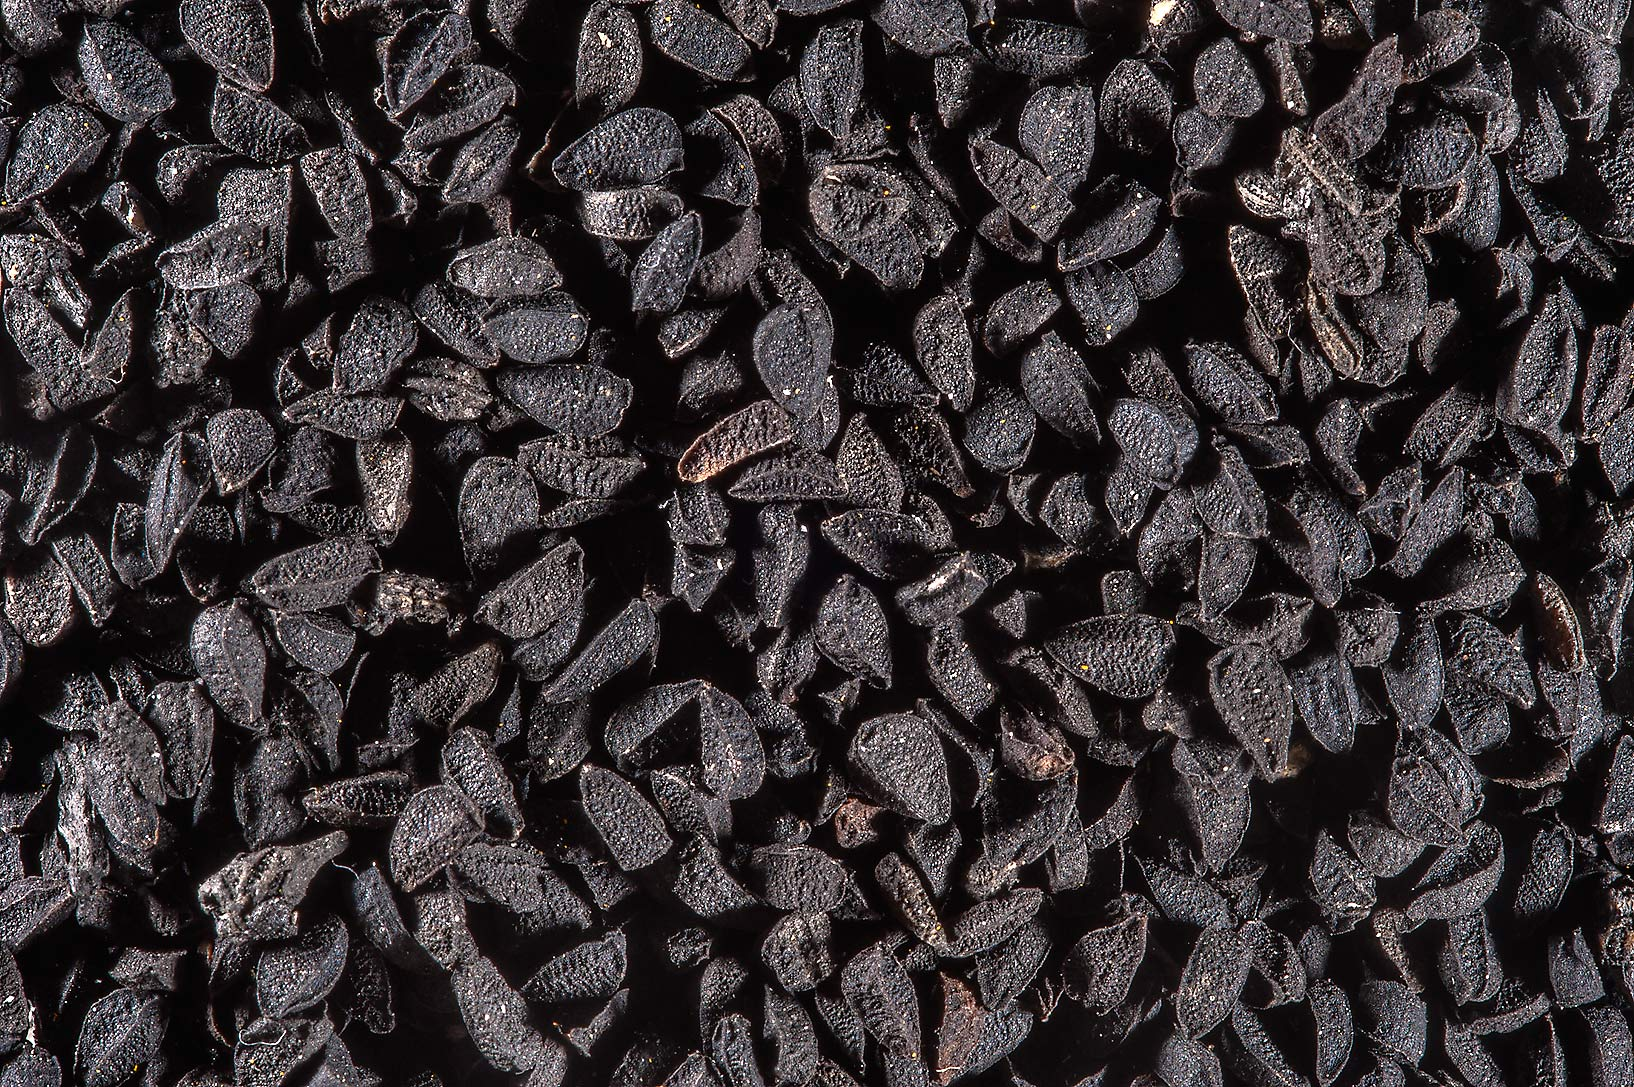 Nigella seeds (triangular, matte-black grains...Souq Waqif (Old Market). Doha, Qatar